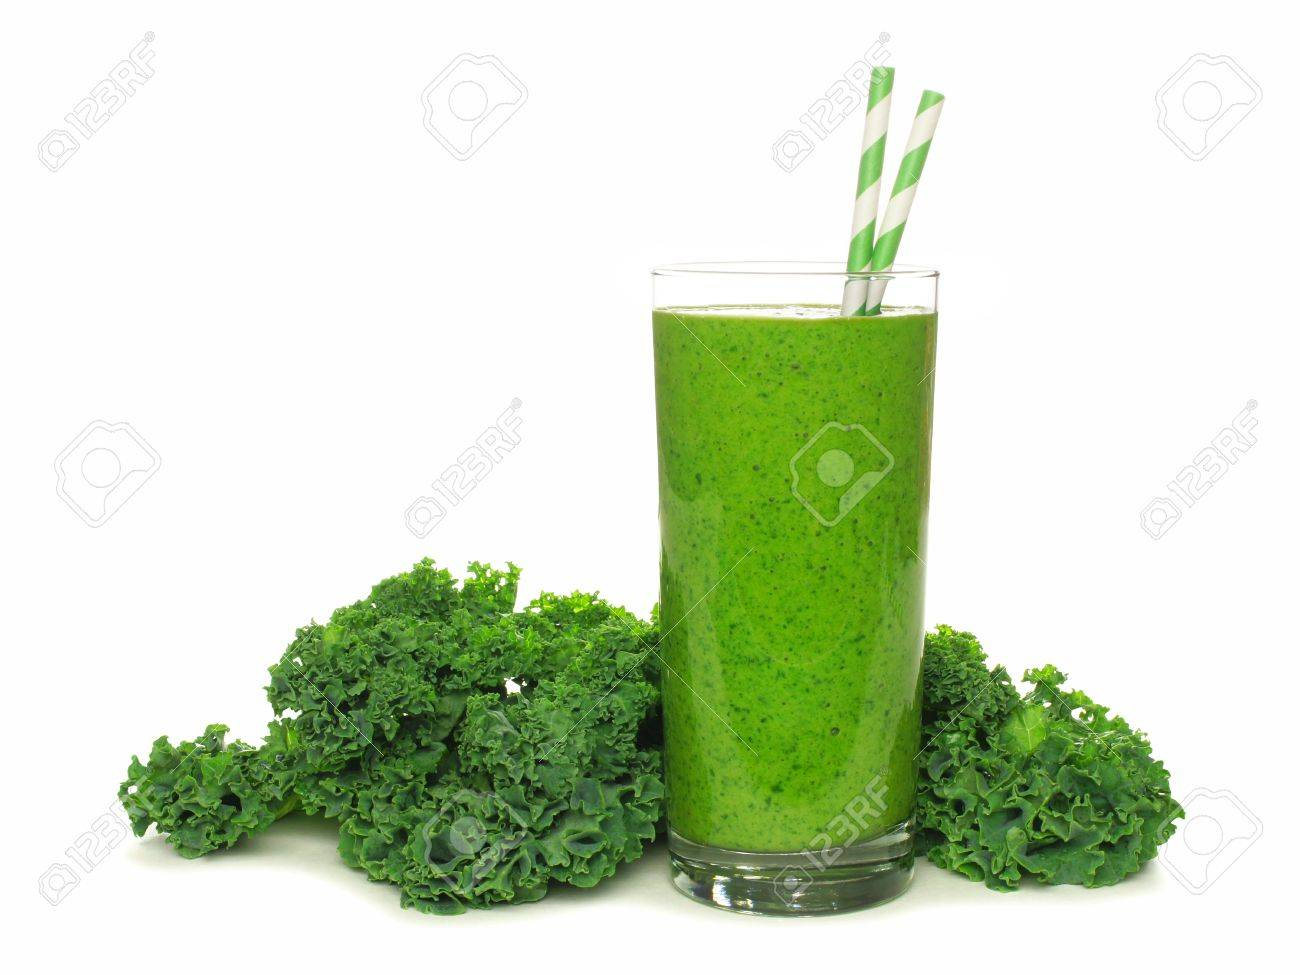 Healthy Green Smoothie With Kale In A Glass With Straws Isolated